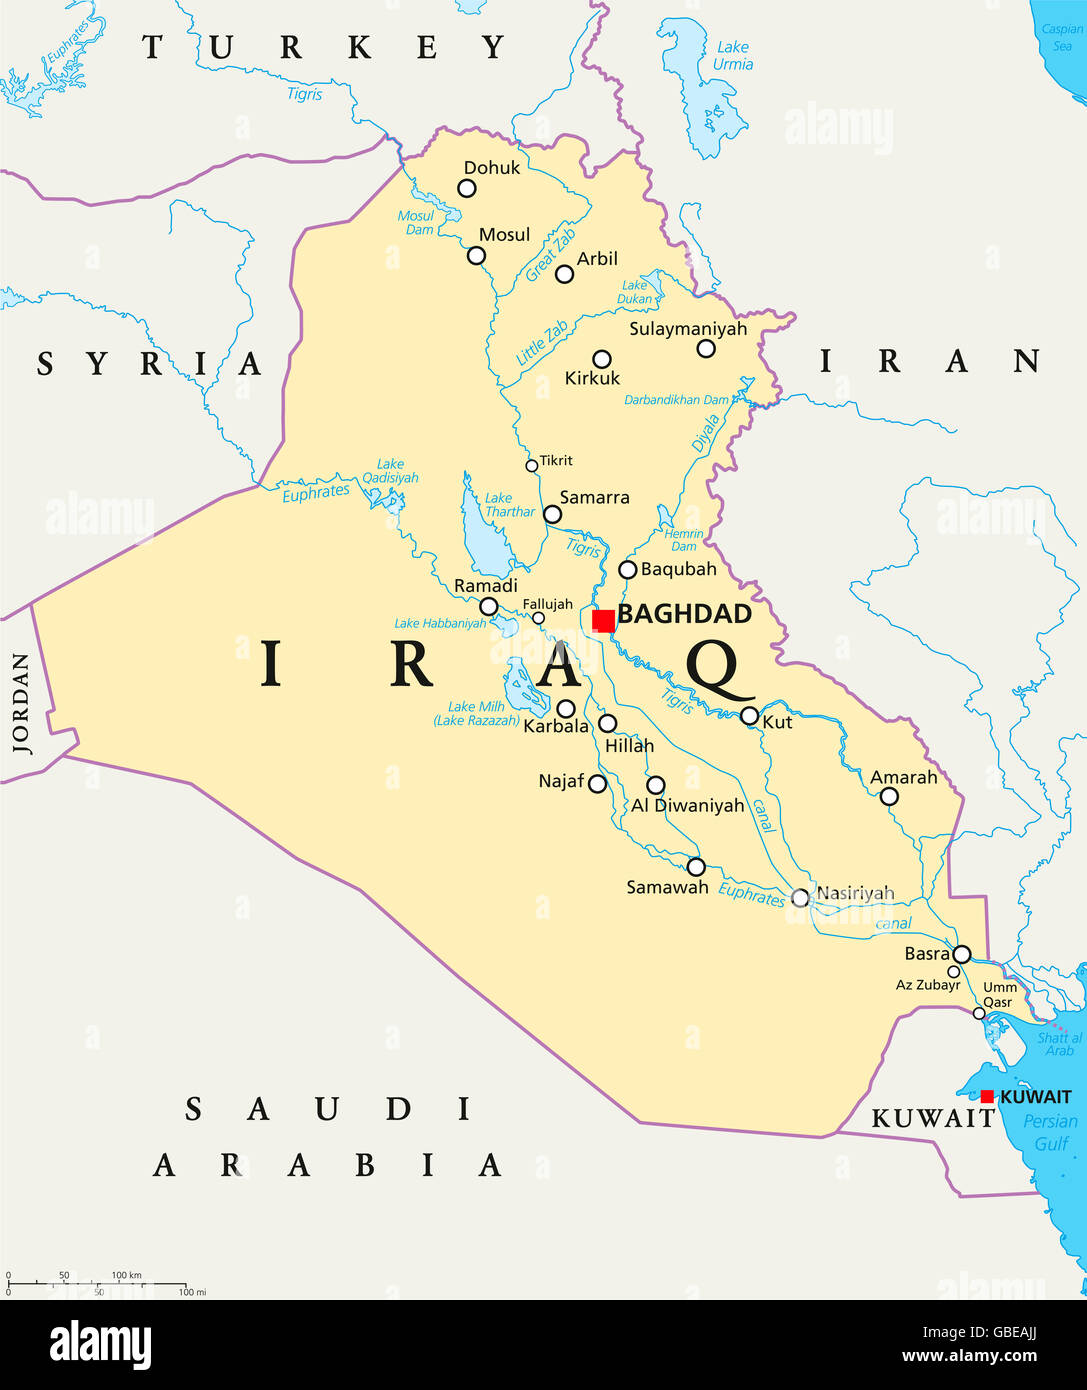 Baghdad Map Stock Photos & Baghdad Map Stock Images - Alamy